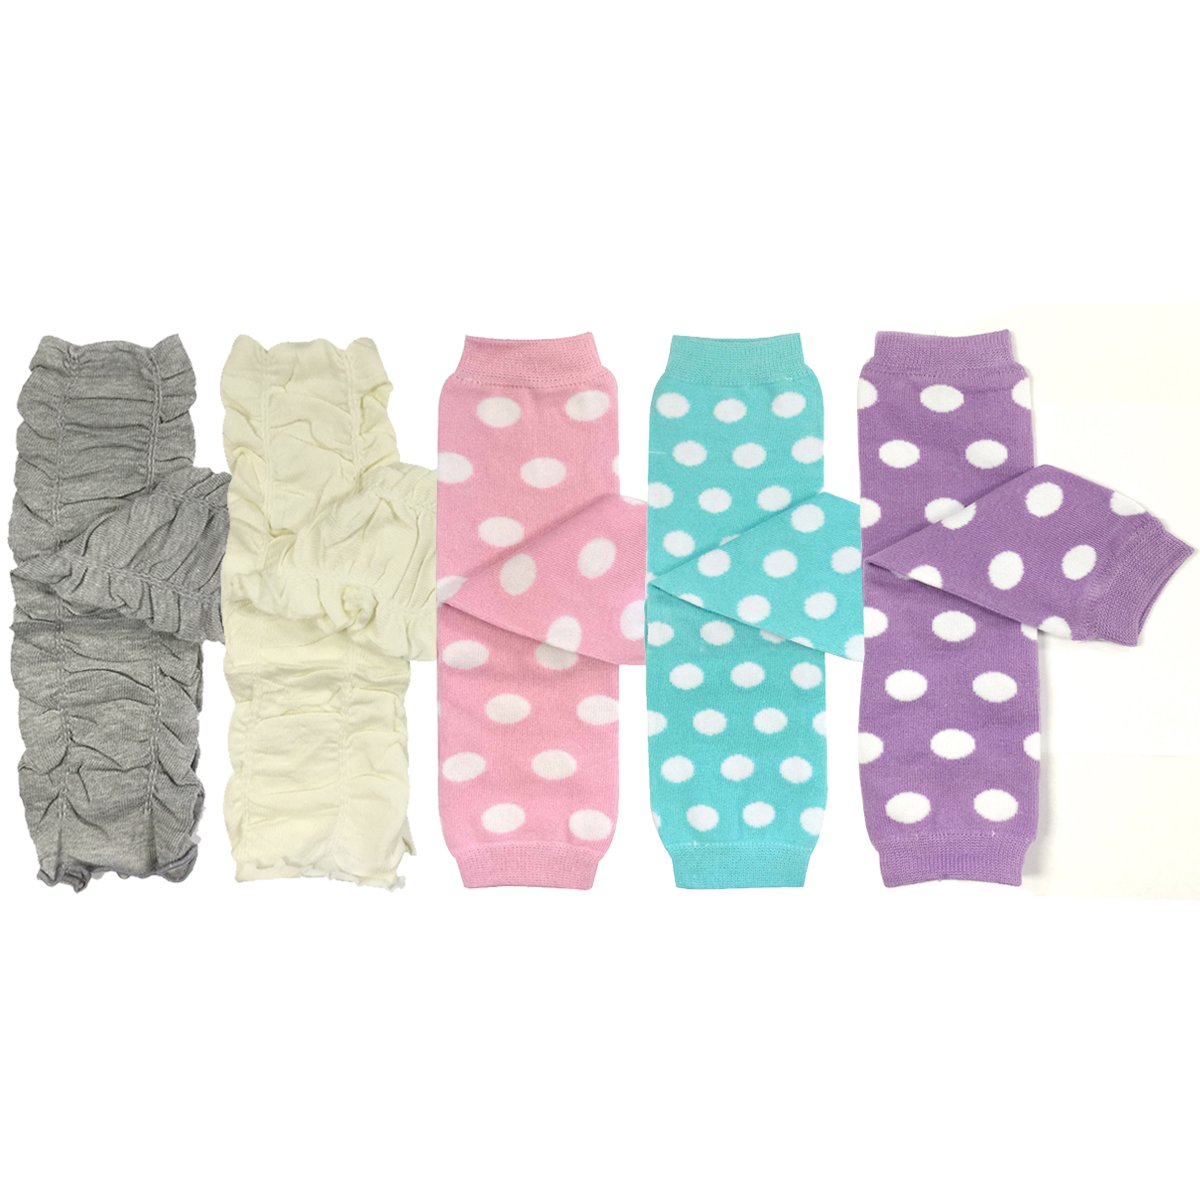 Bowbear Set of 5 Baby /& Toddler Leg Warmer Collection Premium Value Pack